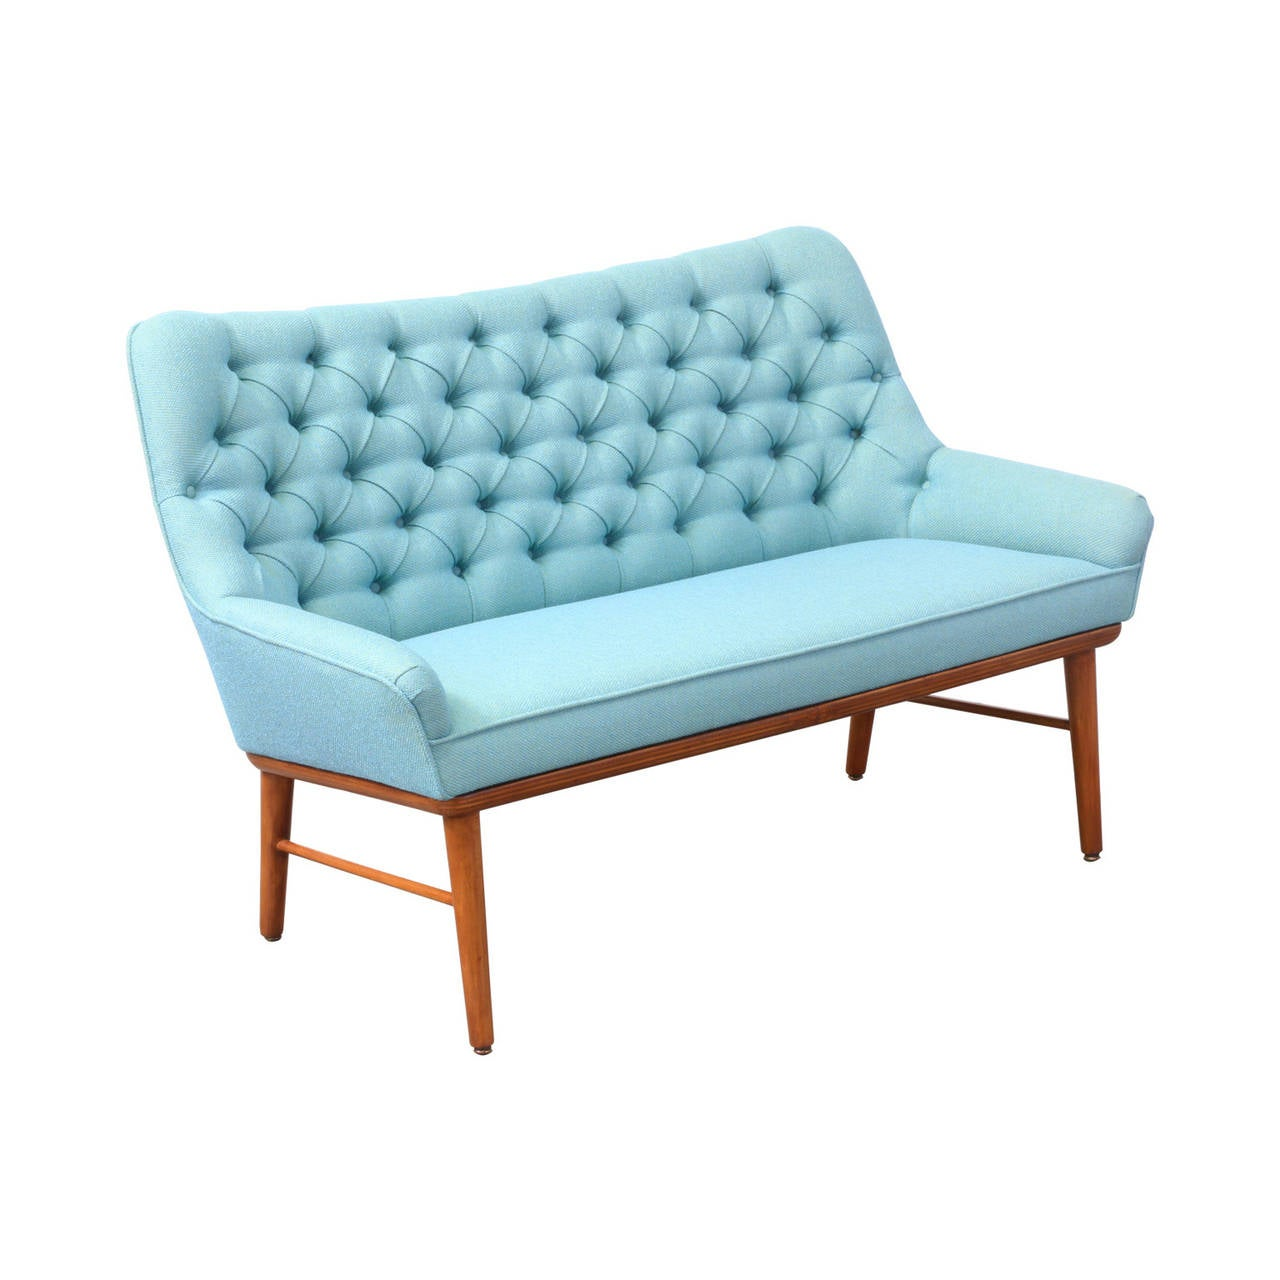 Mid century modern tufted loveseat for sale at 1stdibs for Mid century modern seating